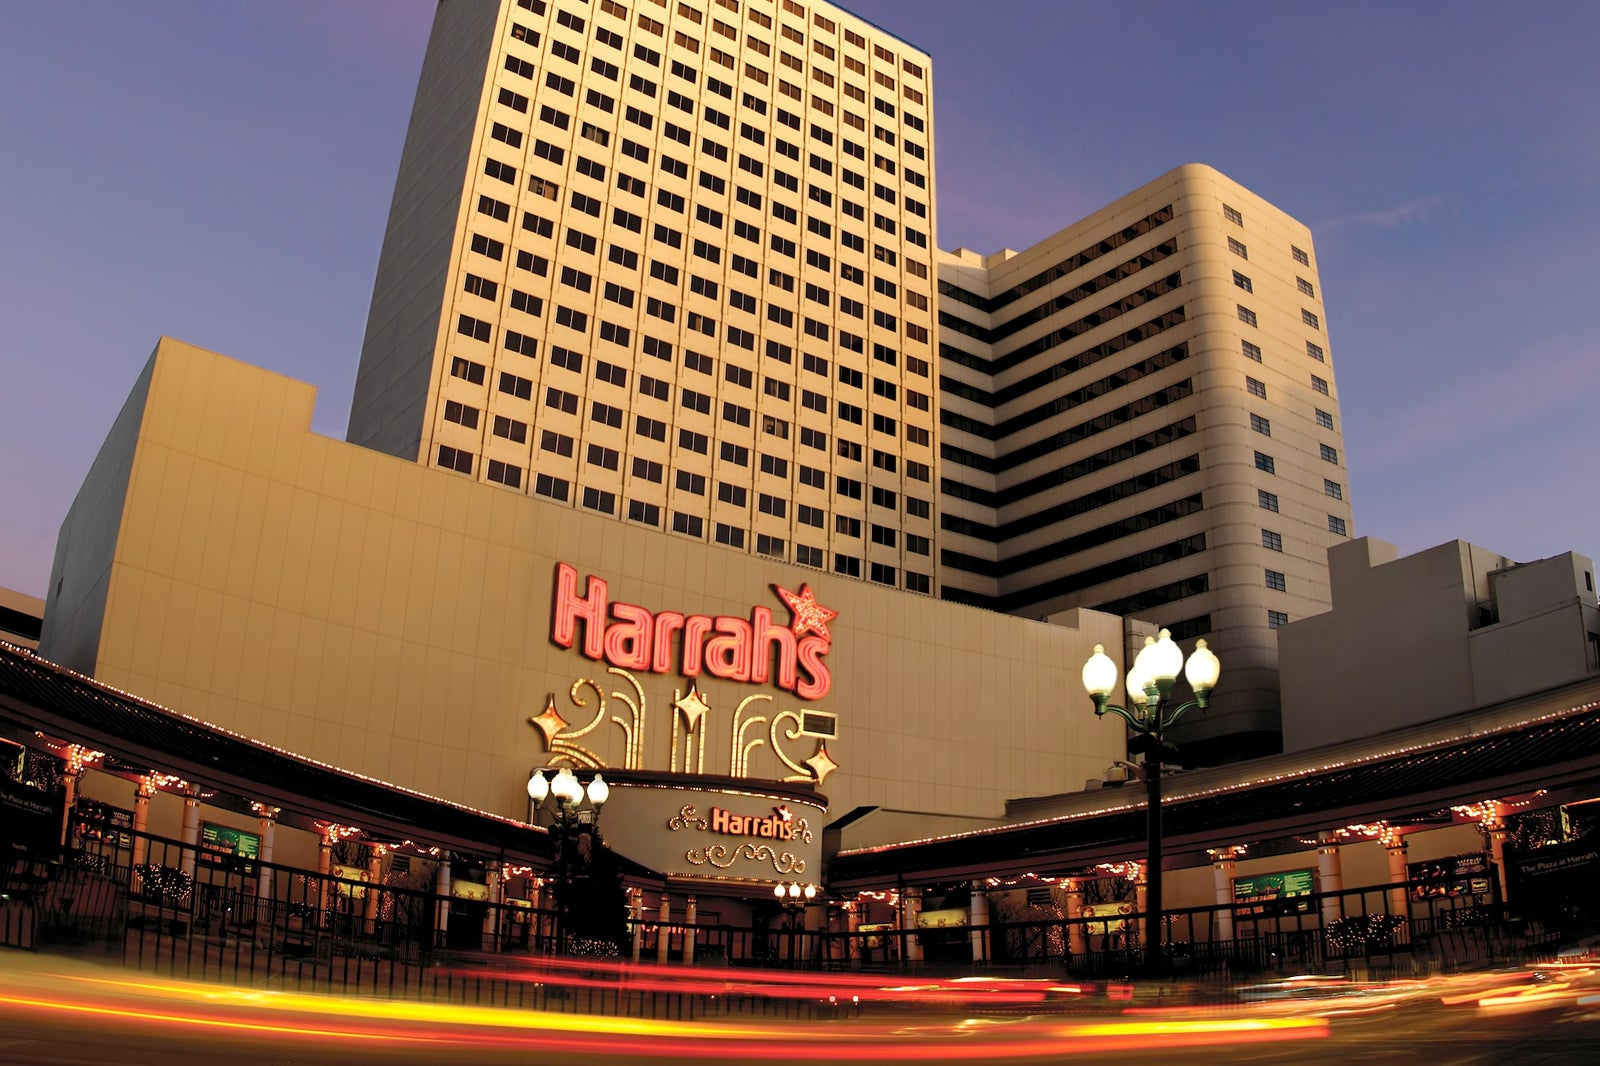 Best casino hotel in reno nevada lady luck casino biloxi